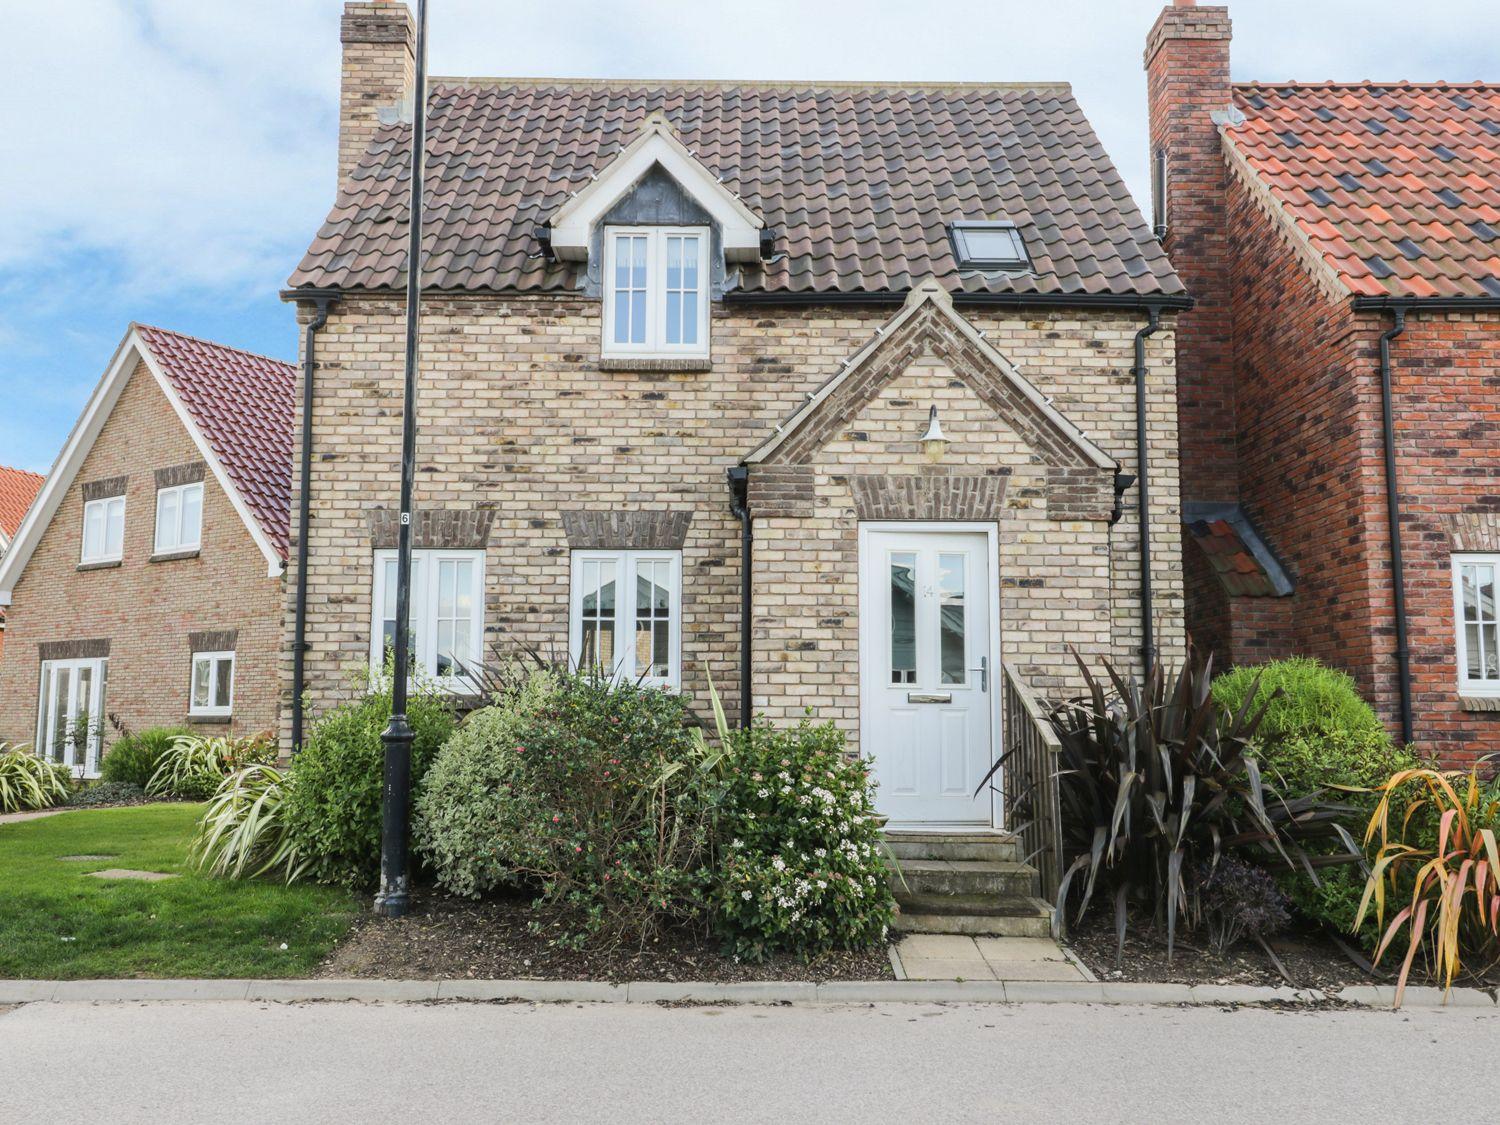 14 Turnberry Drive - Whitby & North Yorkshire - 969025 - photo 1